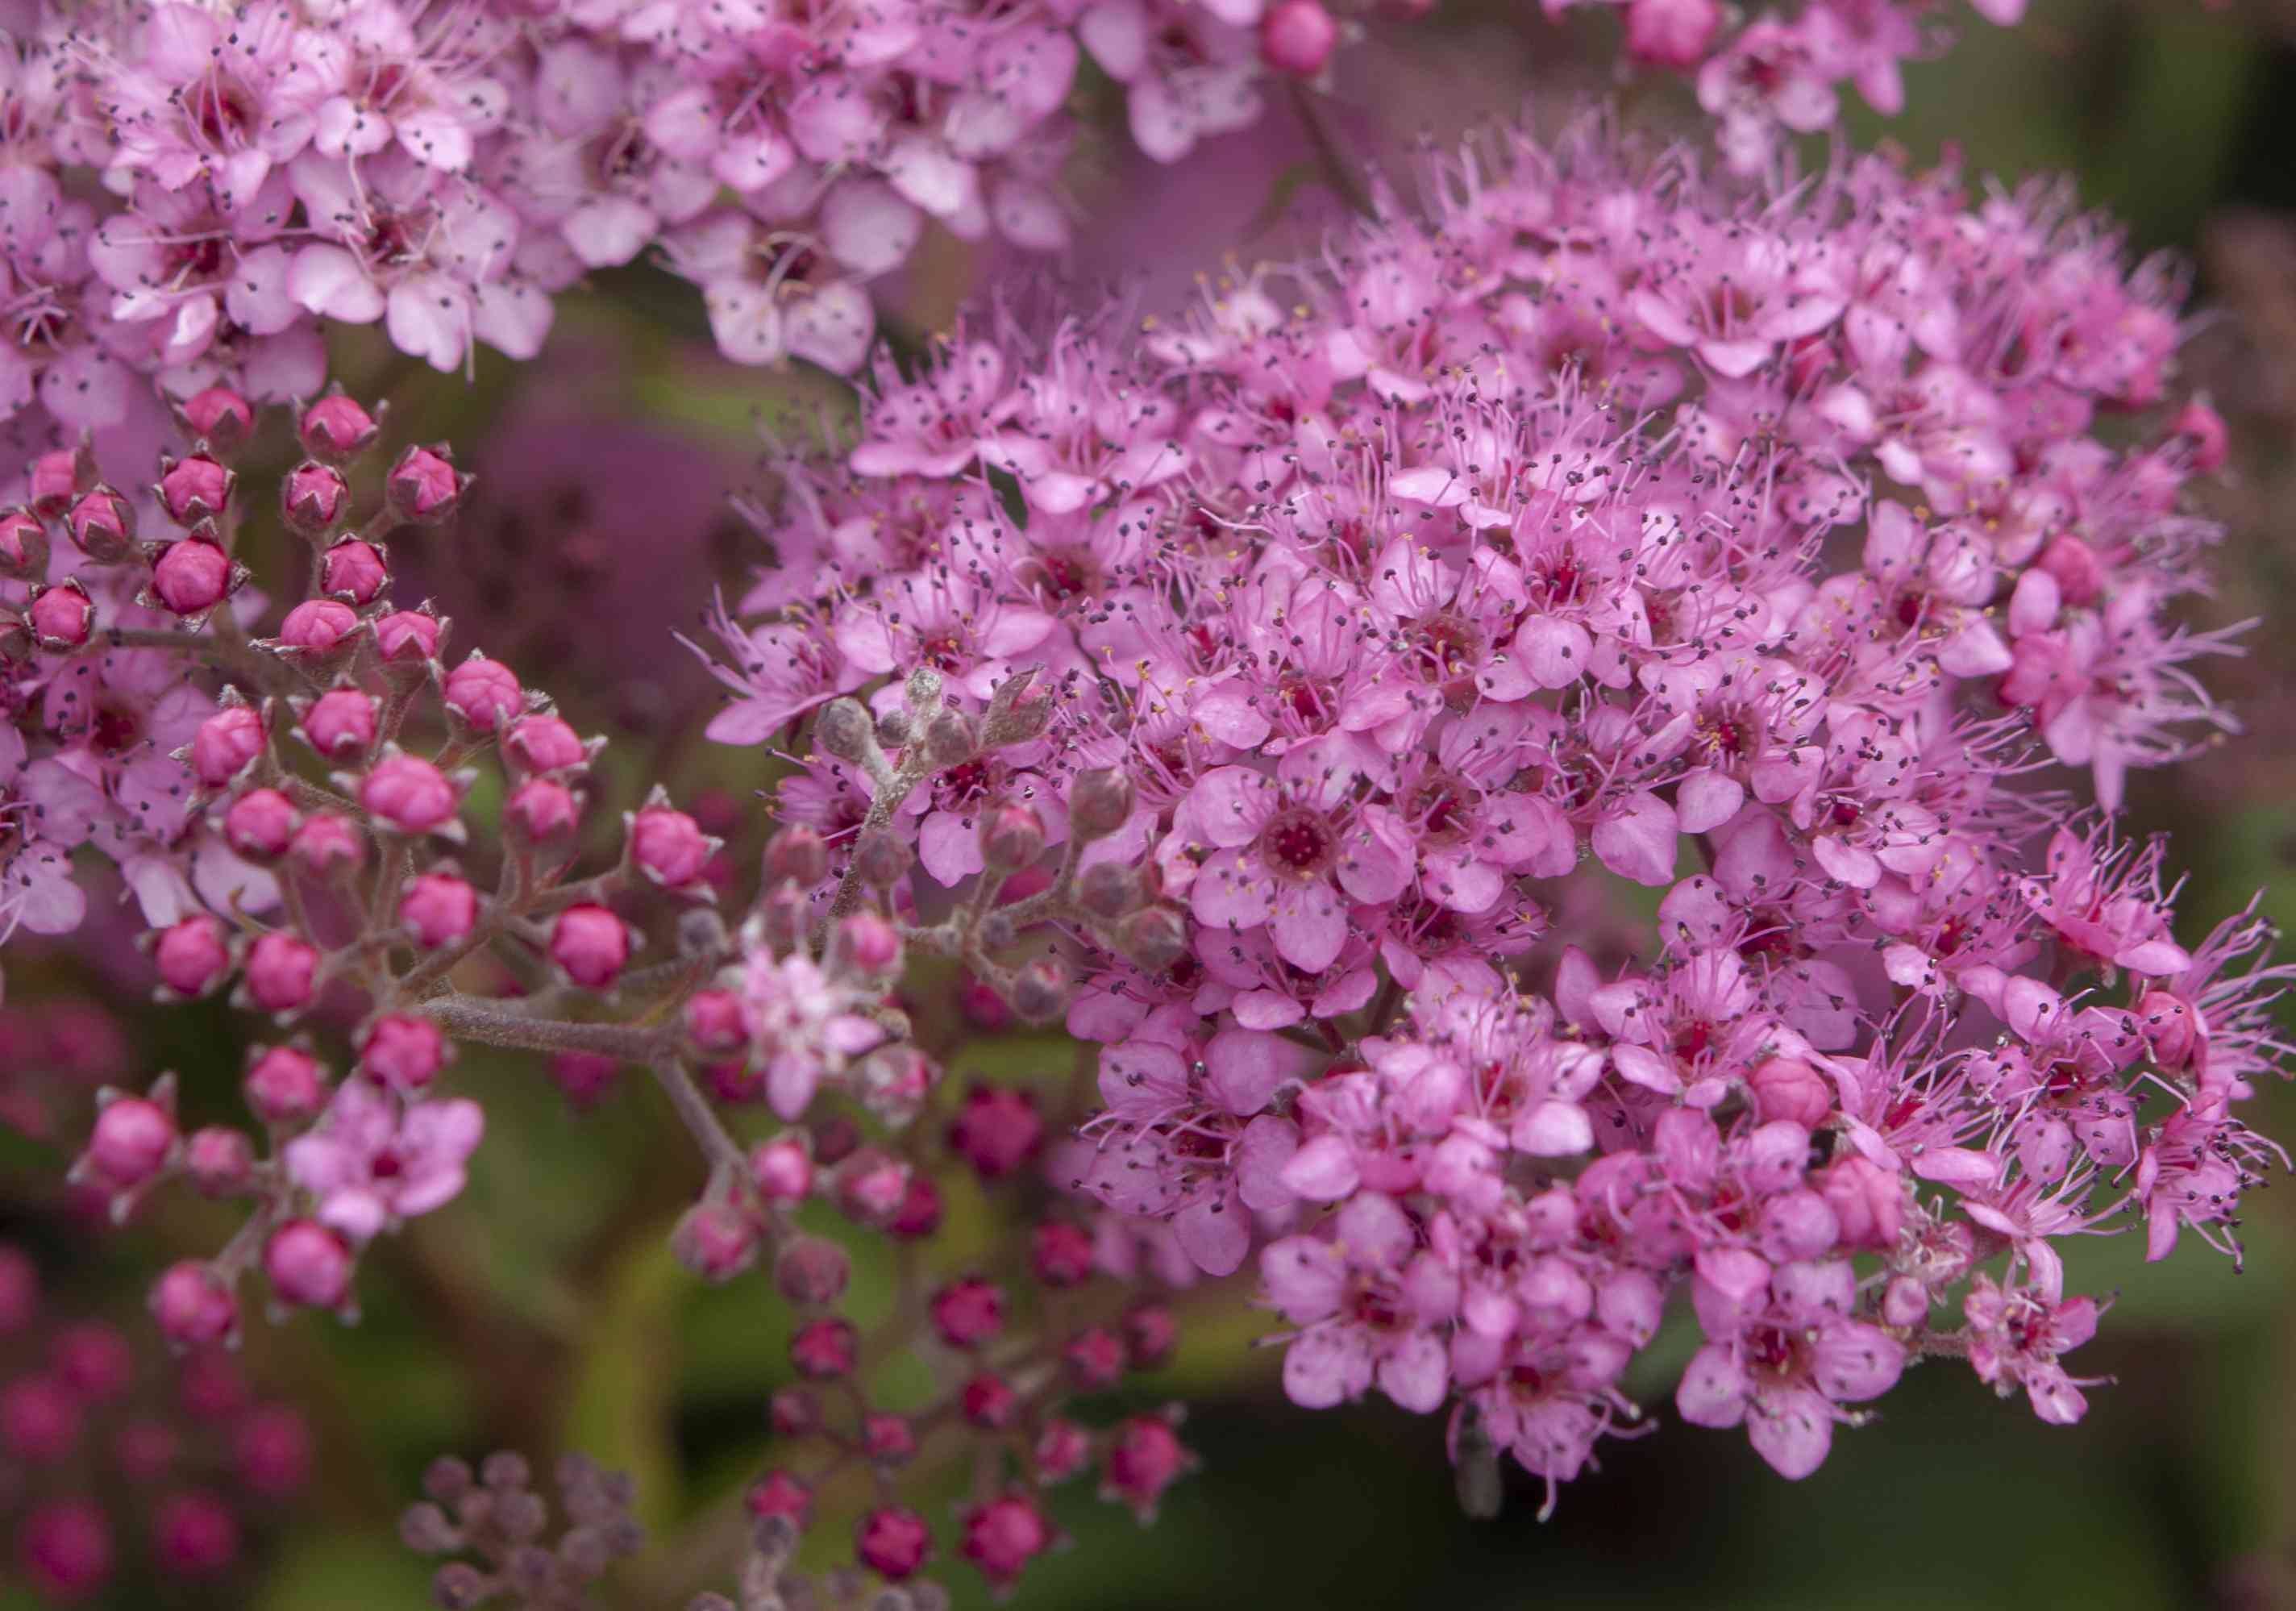 Neon flash spirea shrub with pink flower clusters and buds closeup